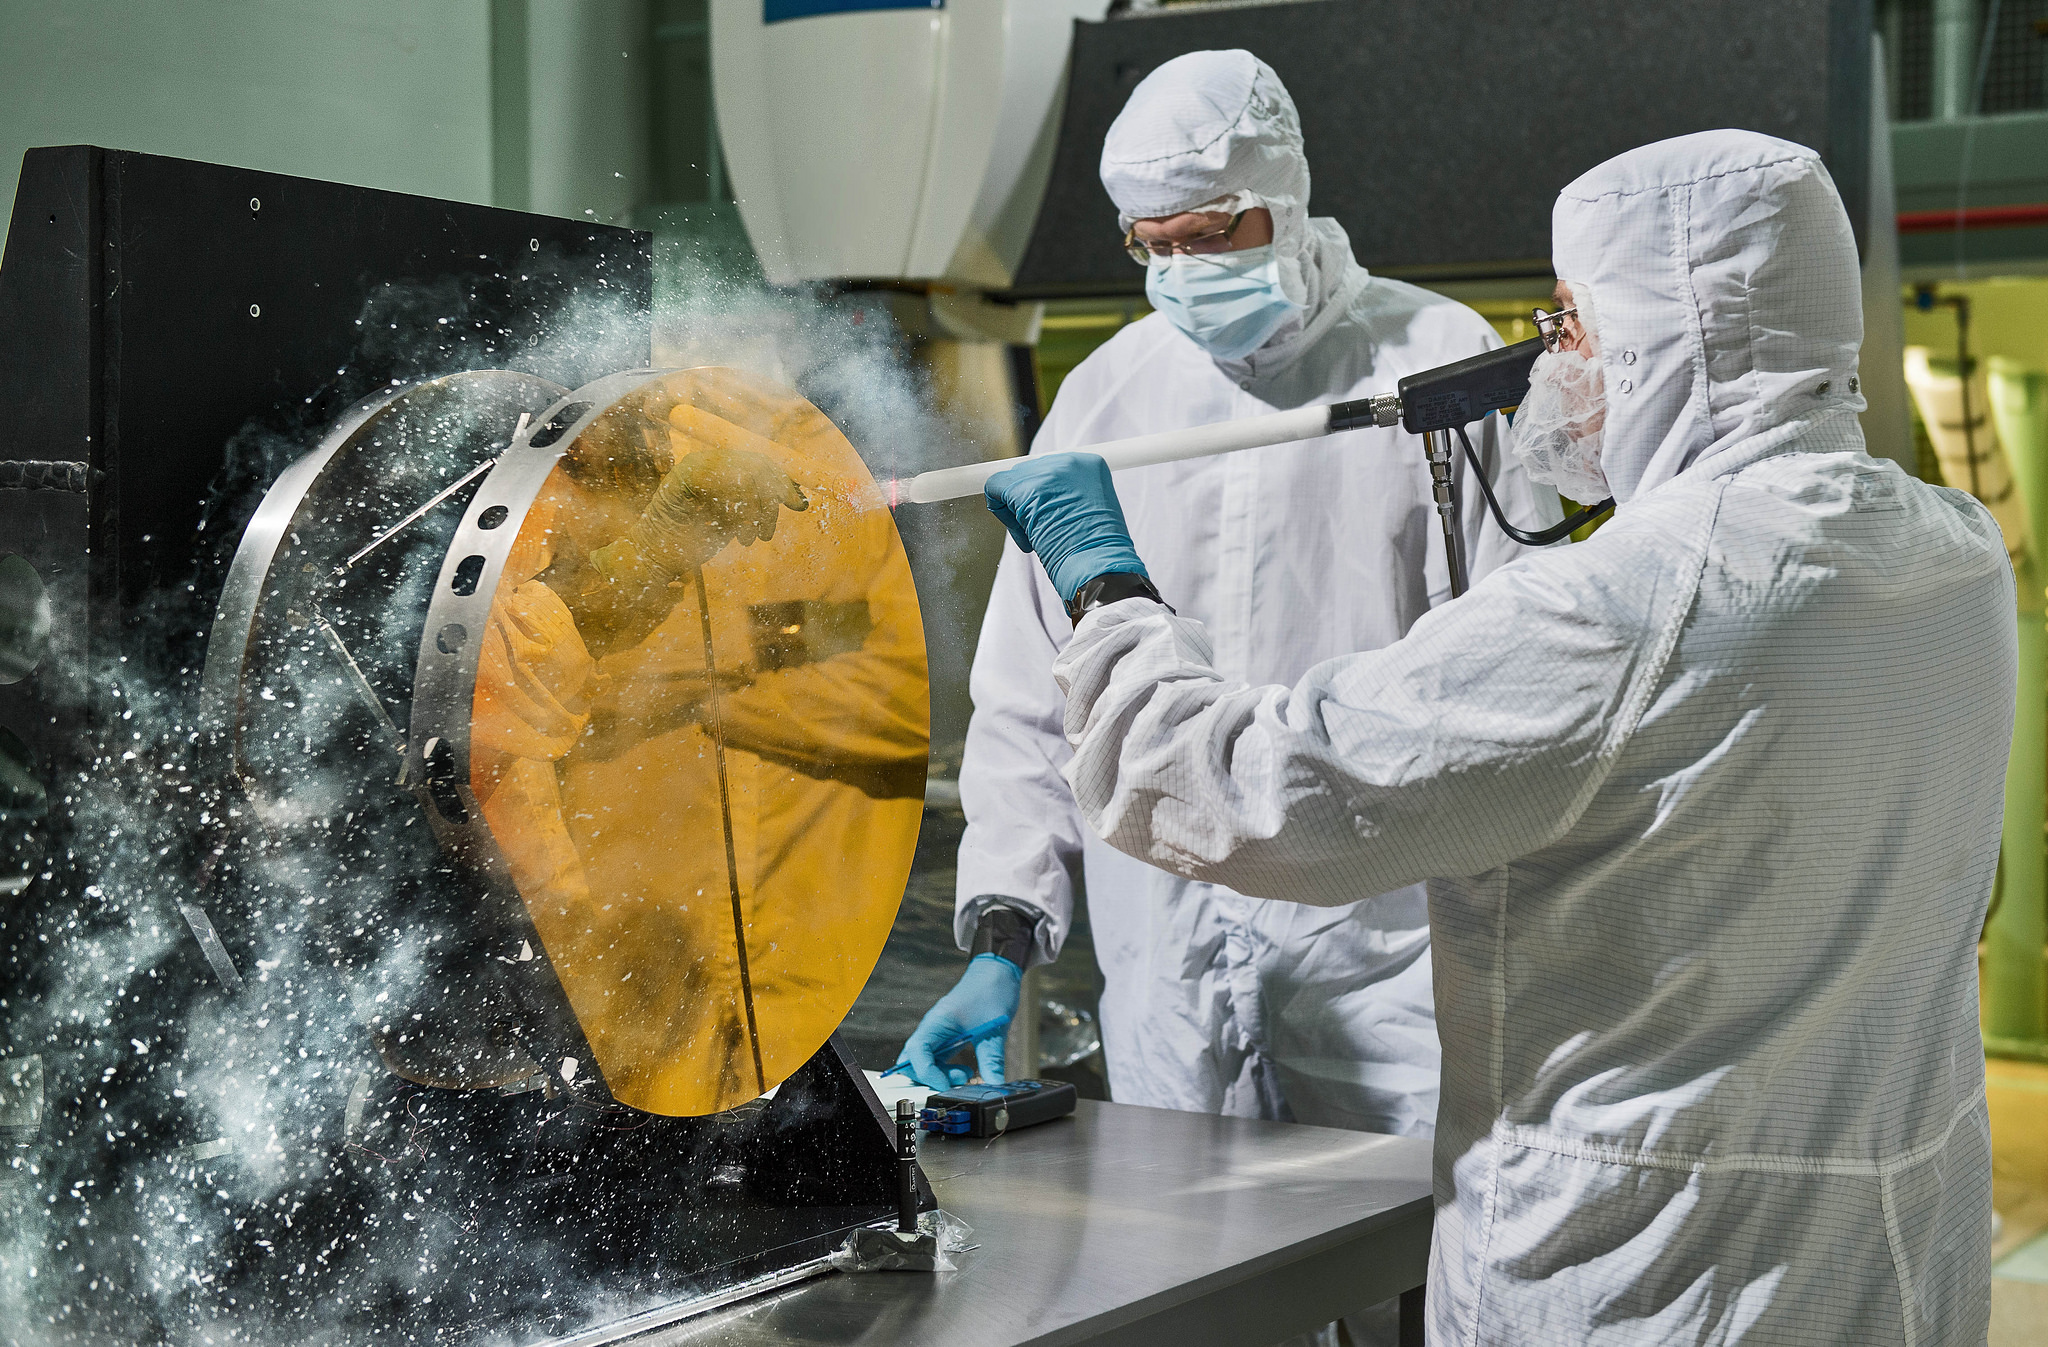 NASA engineers cleaning mirror with carbon dioxide snow